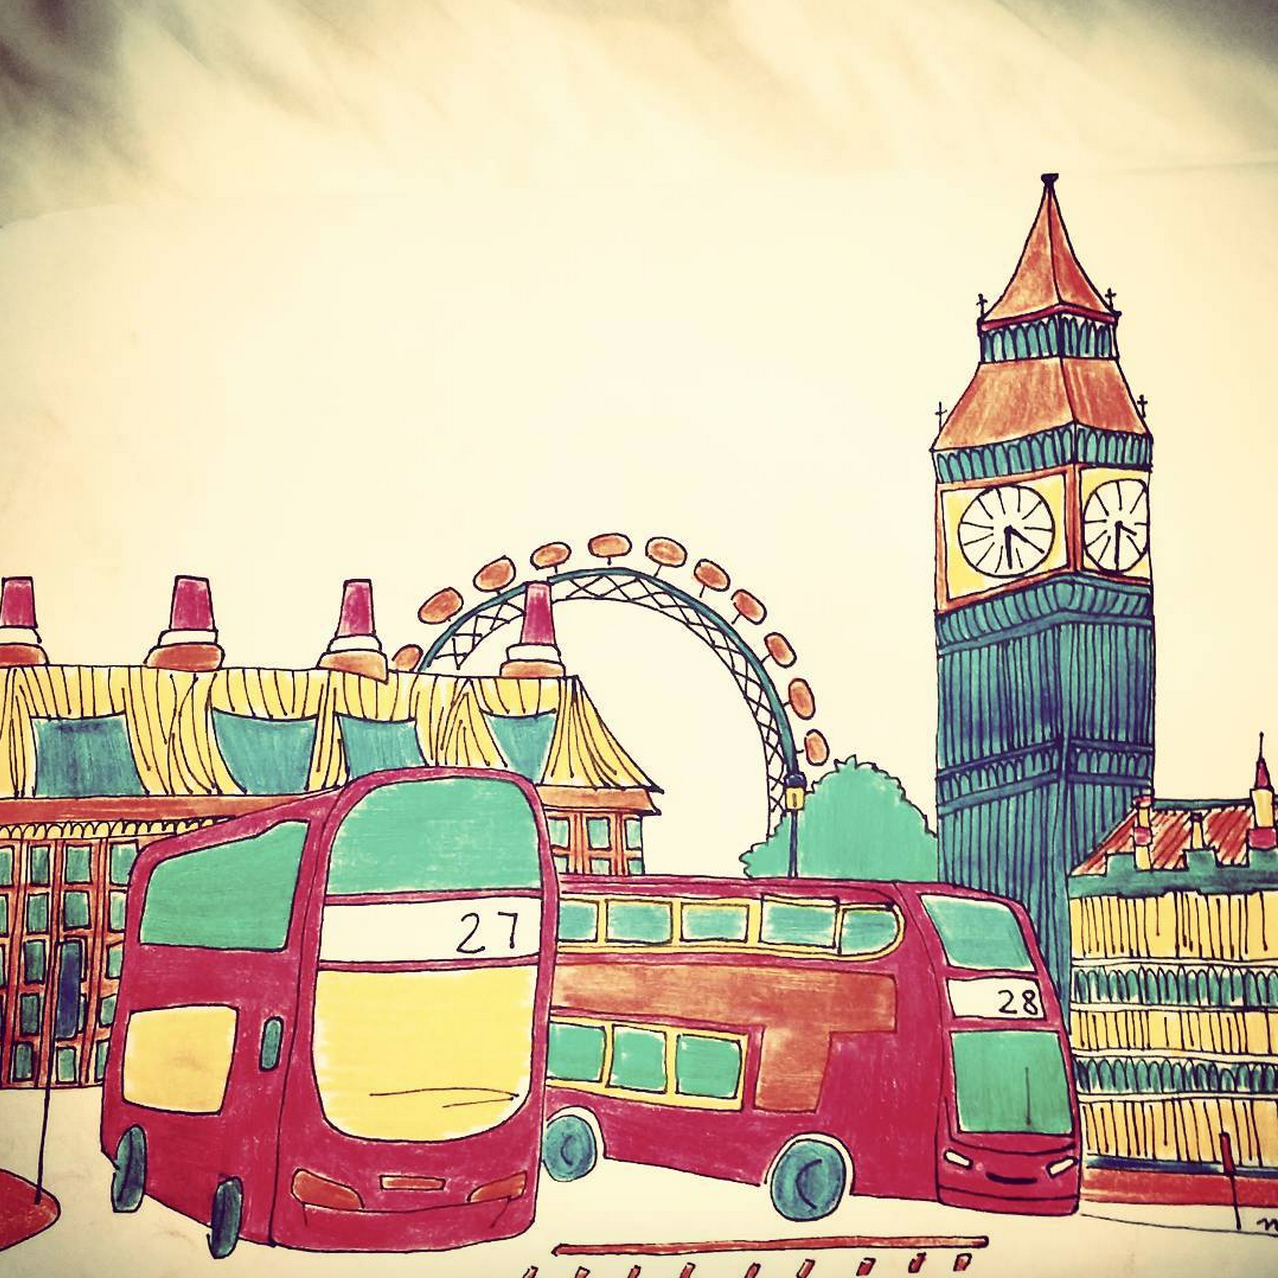 Londres by @macerchi